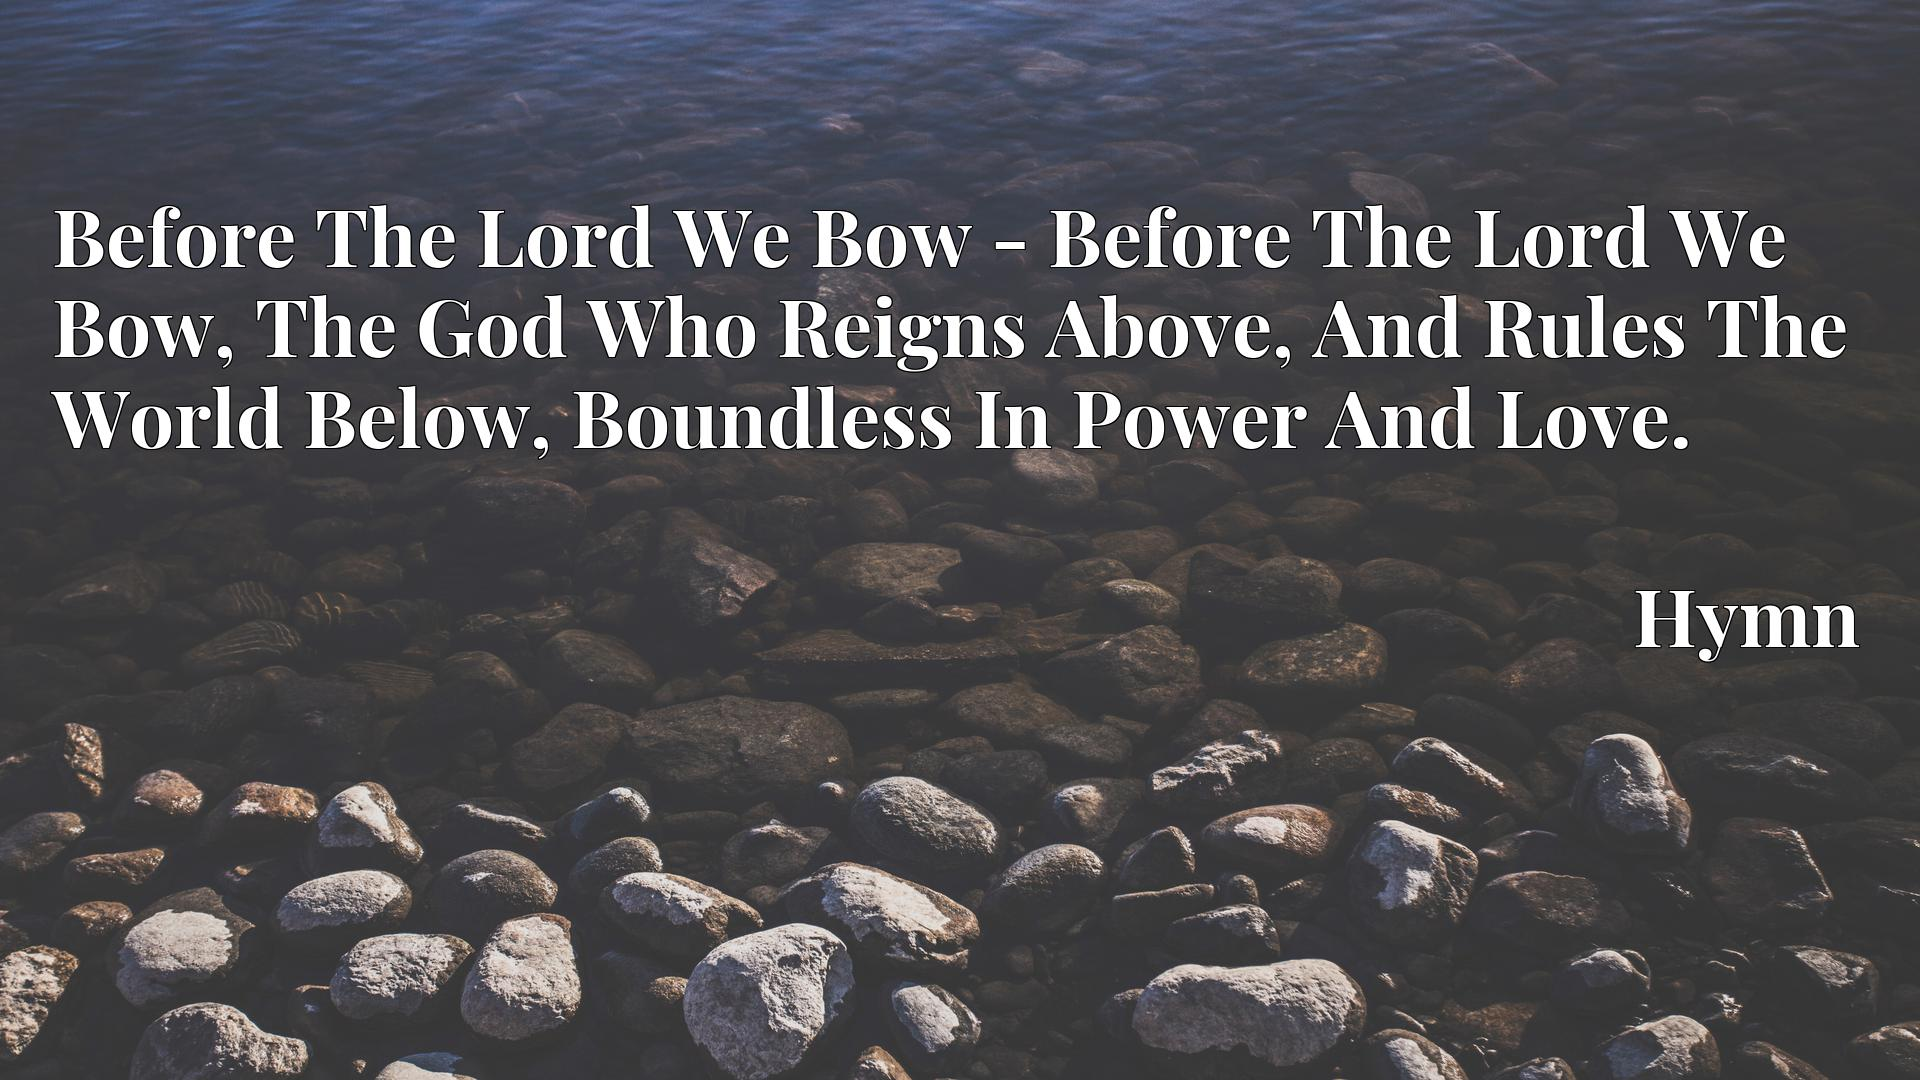 Before The Lord We Bow - Before The Lord We Bow, The God Who Reigns Above, And Rules The World Below, Boundless In Power And Love. - Hymn